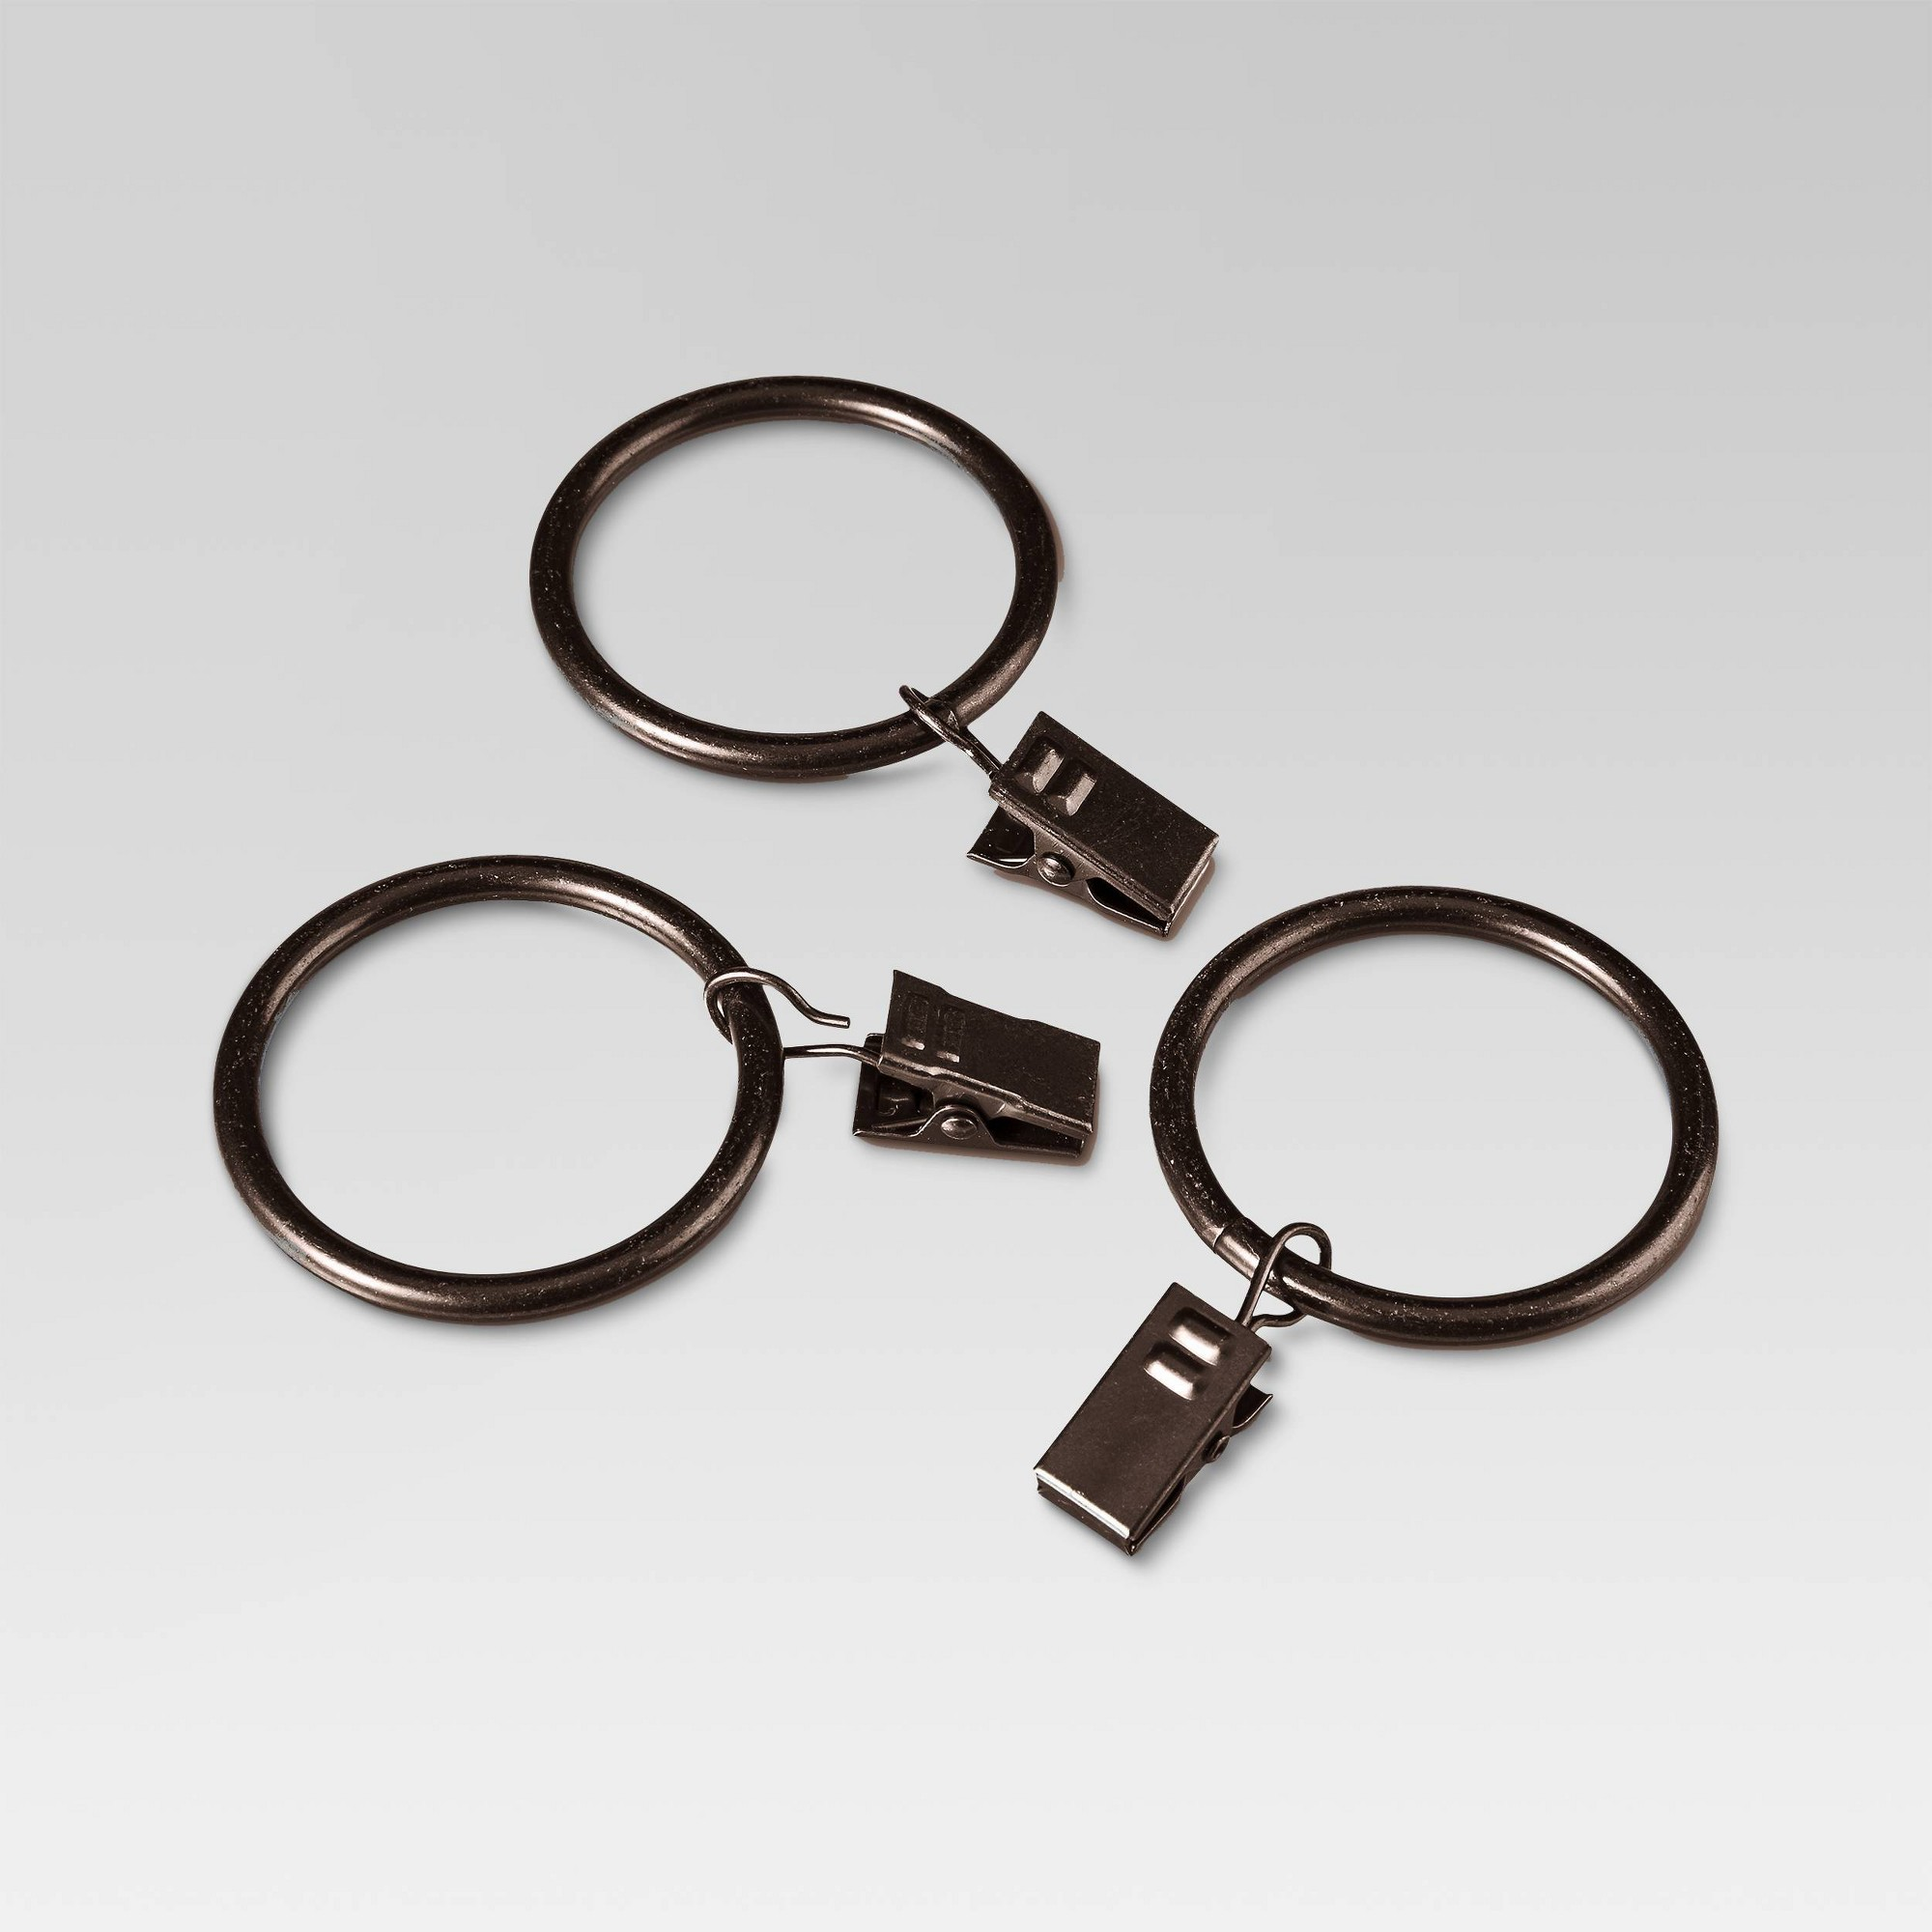 Curtain Clip Rings Set - Oil Rubbed Bronze - Threshold , Brown